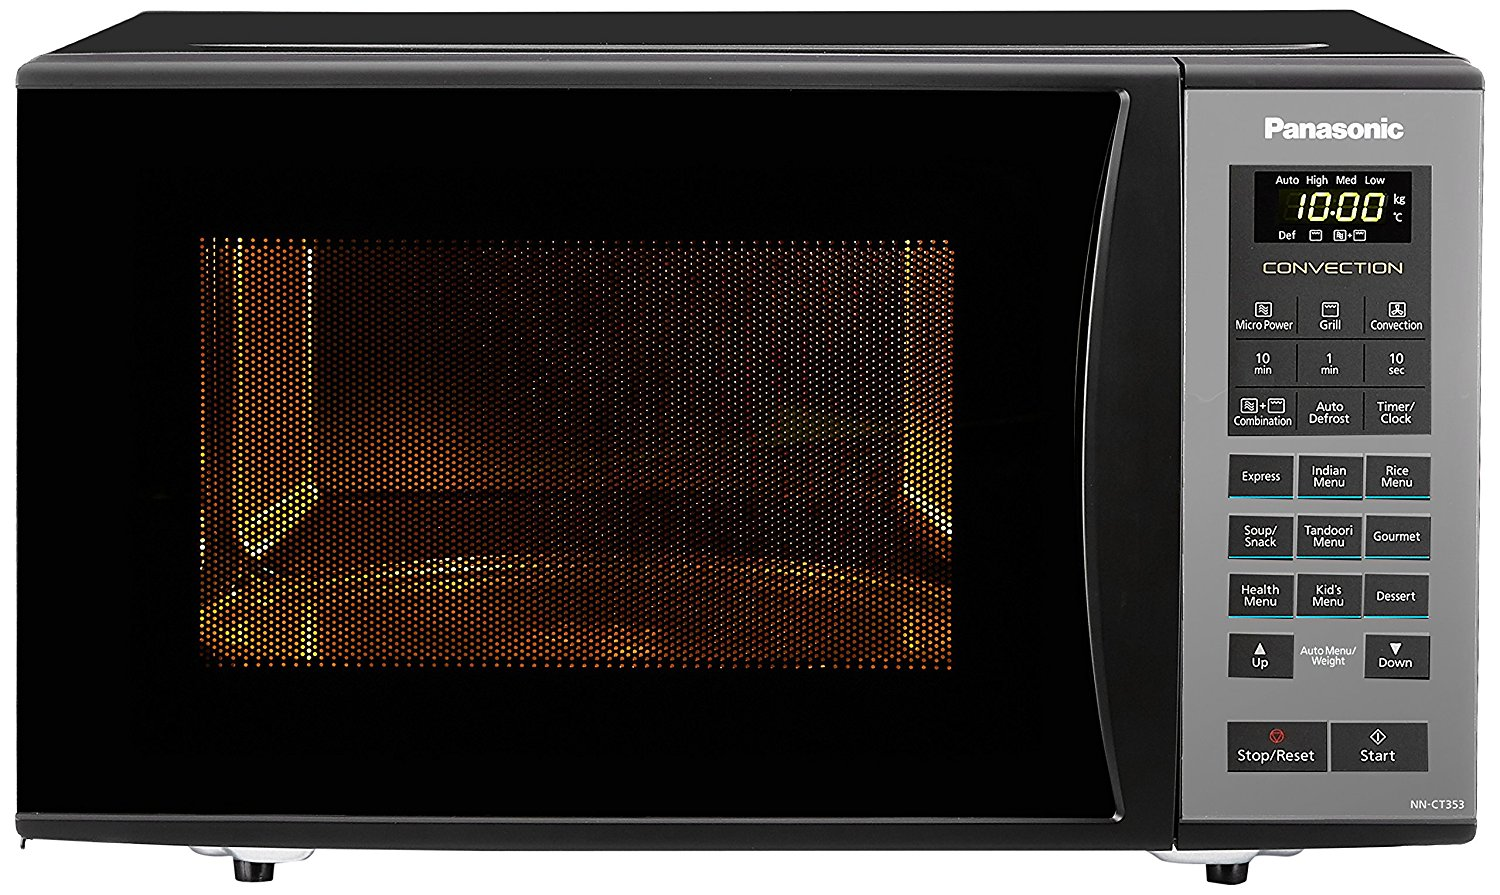 Convection Microwave Oven 23 liters capacity from Panasonic